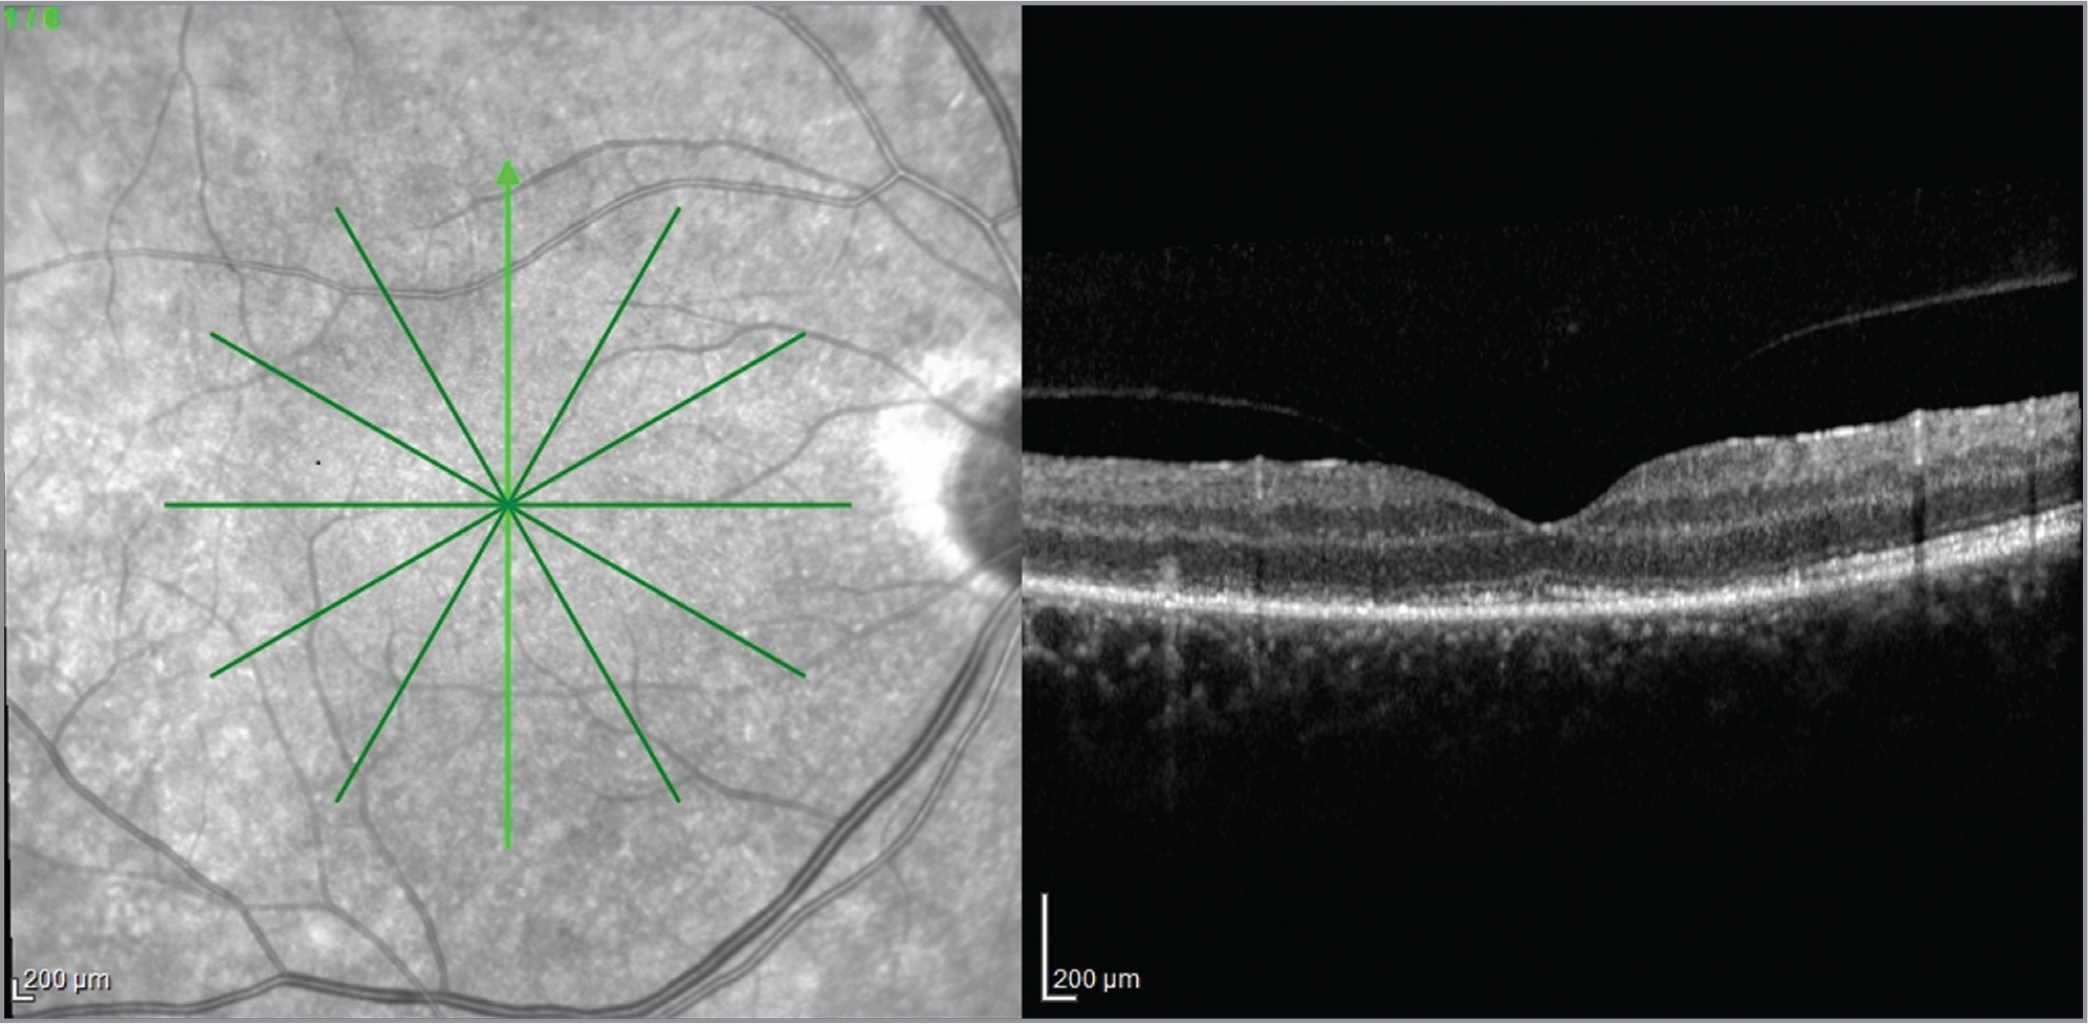 Spectral-domain optical coherence tomography imaging showing the disruption of the inner segment/outer segment junction associated with thickening and granular irregular hyperreflectivity of the retinal pigment epithelium and loss of the external limiting membrane.